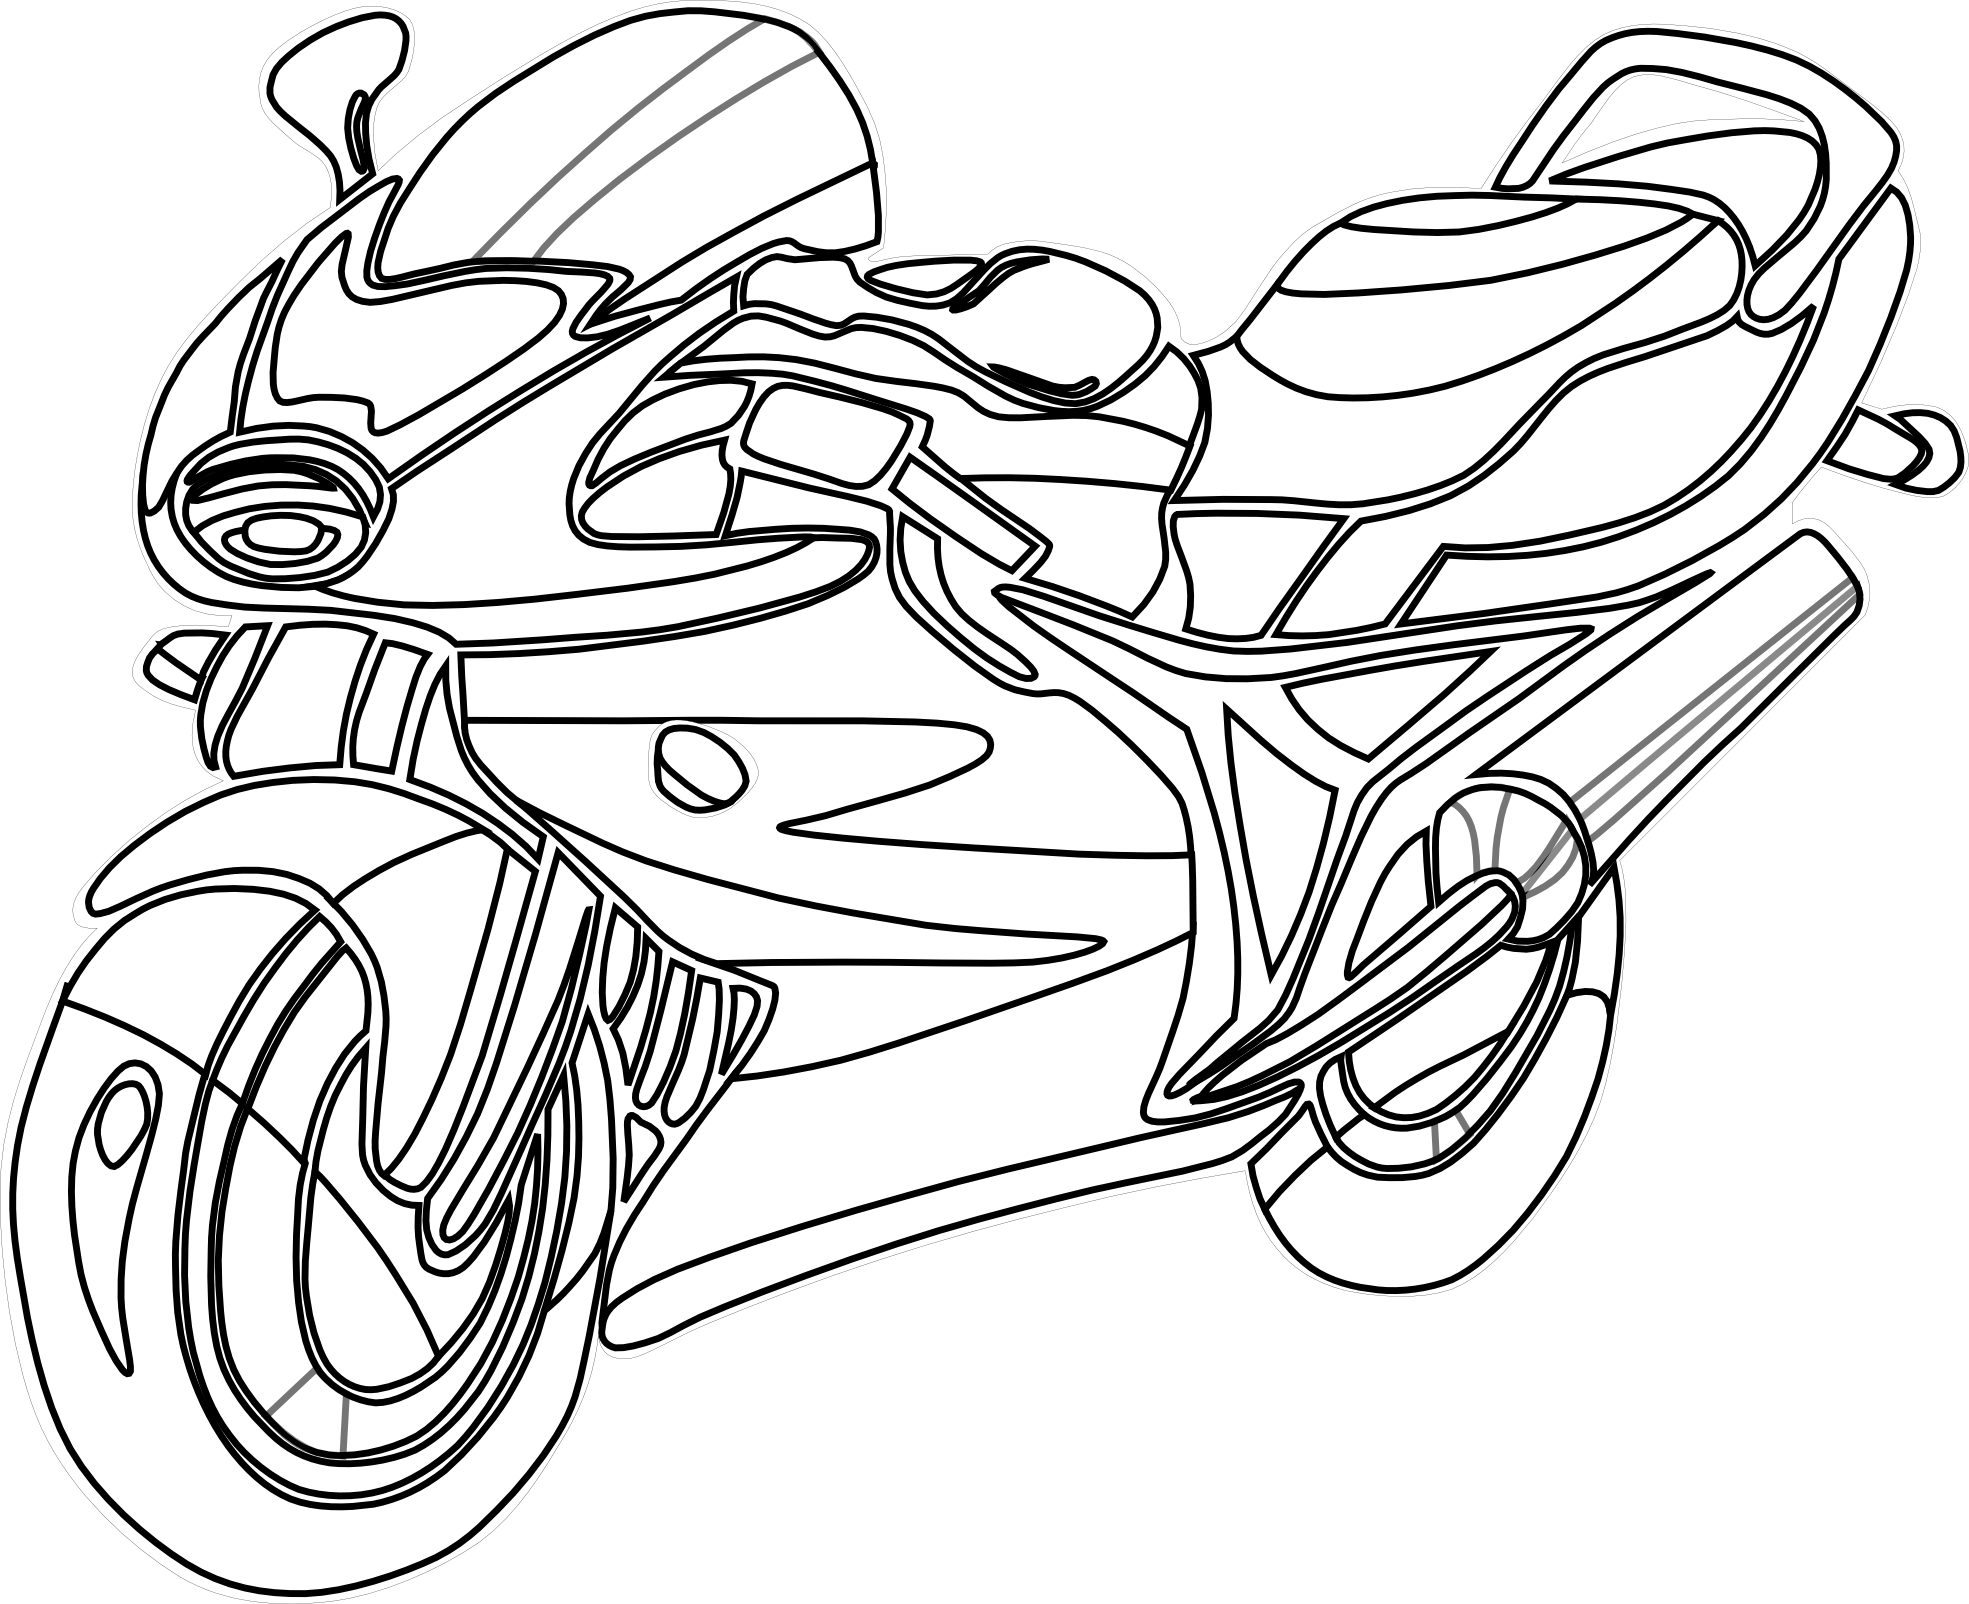 Cool biker cross clipart picture free library Motorcycle Outline Drawing at GetDrawings.com | Free for personal ... picture free library